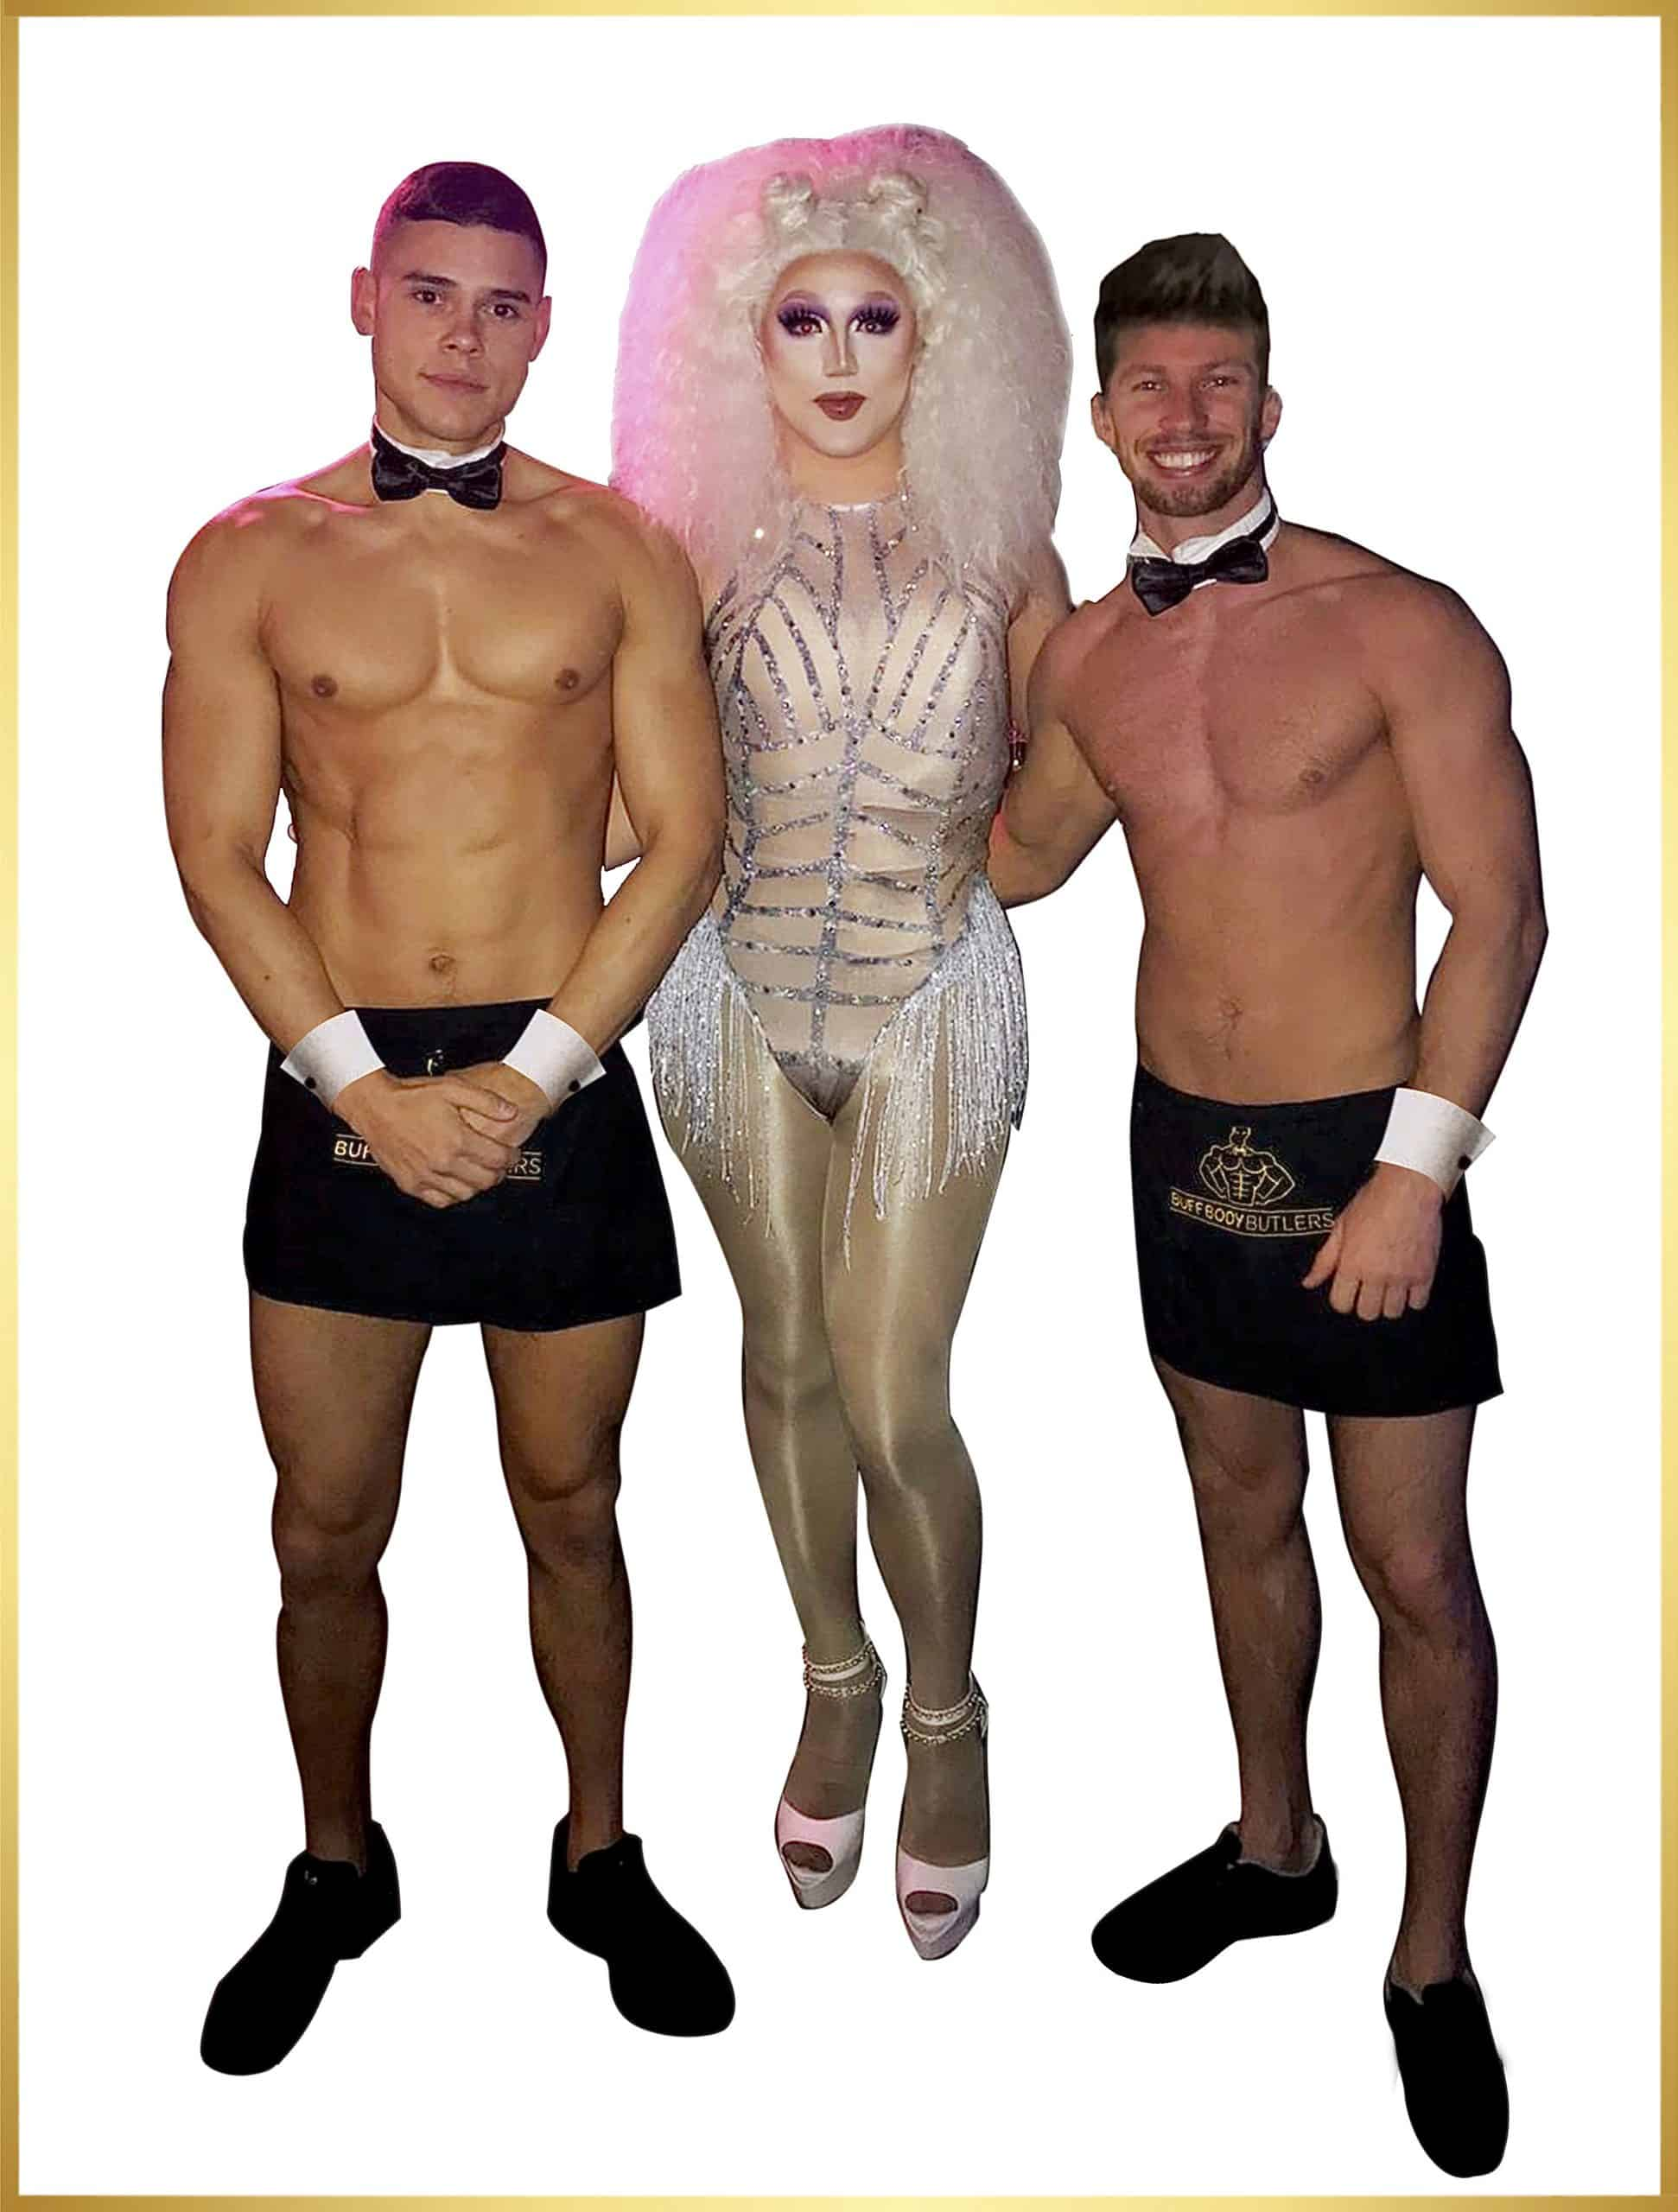 Butlers in the buff with drag queen